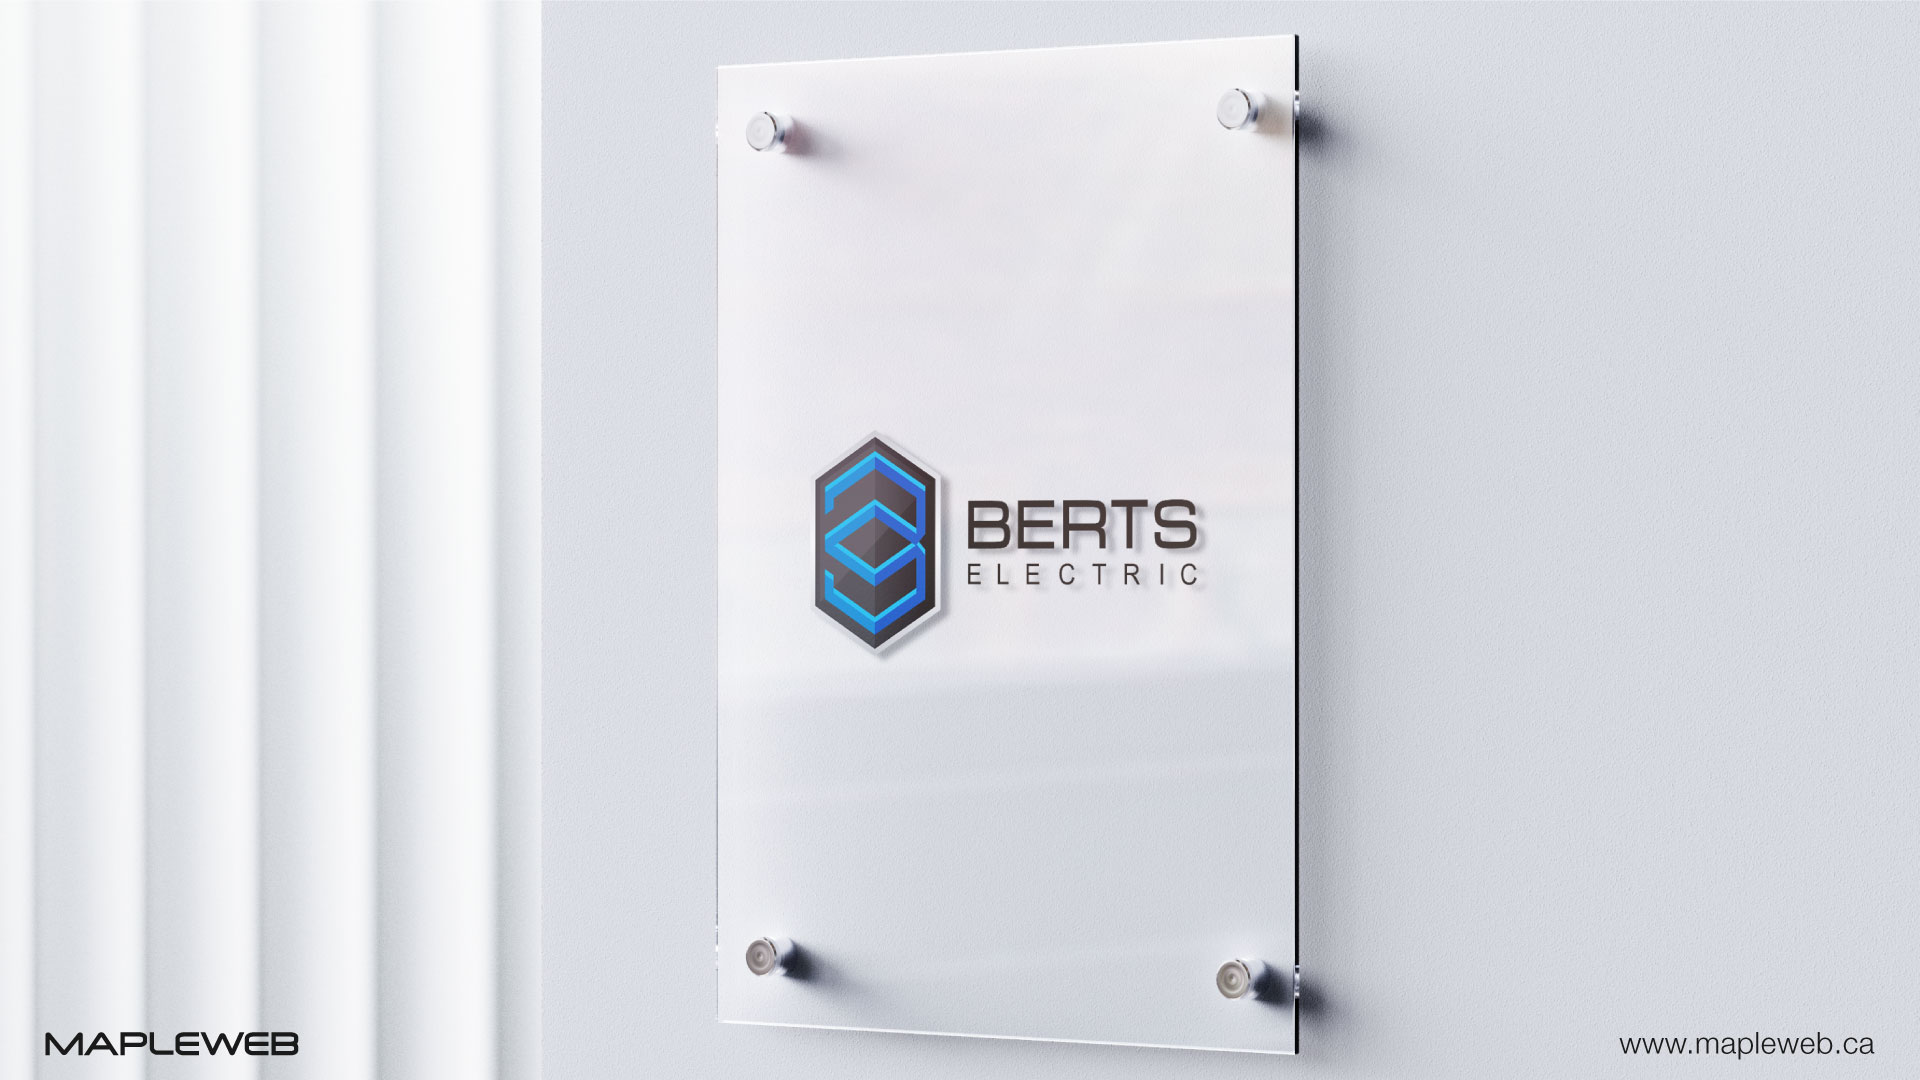 berts-electric-brand-logo-design-by-mapleweb-vancouver-canada-glass-wall-mock